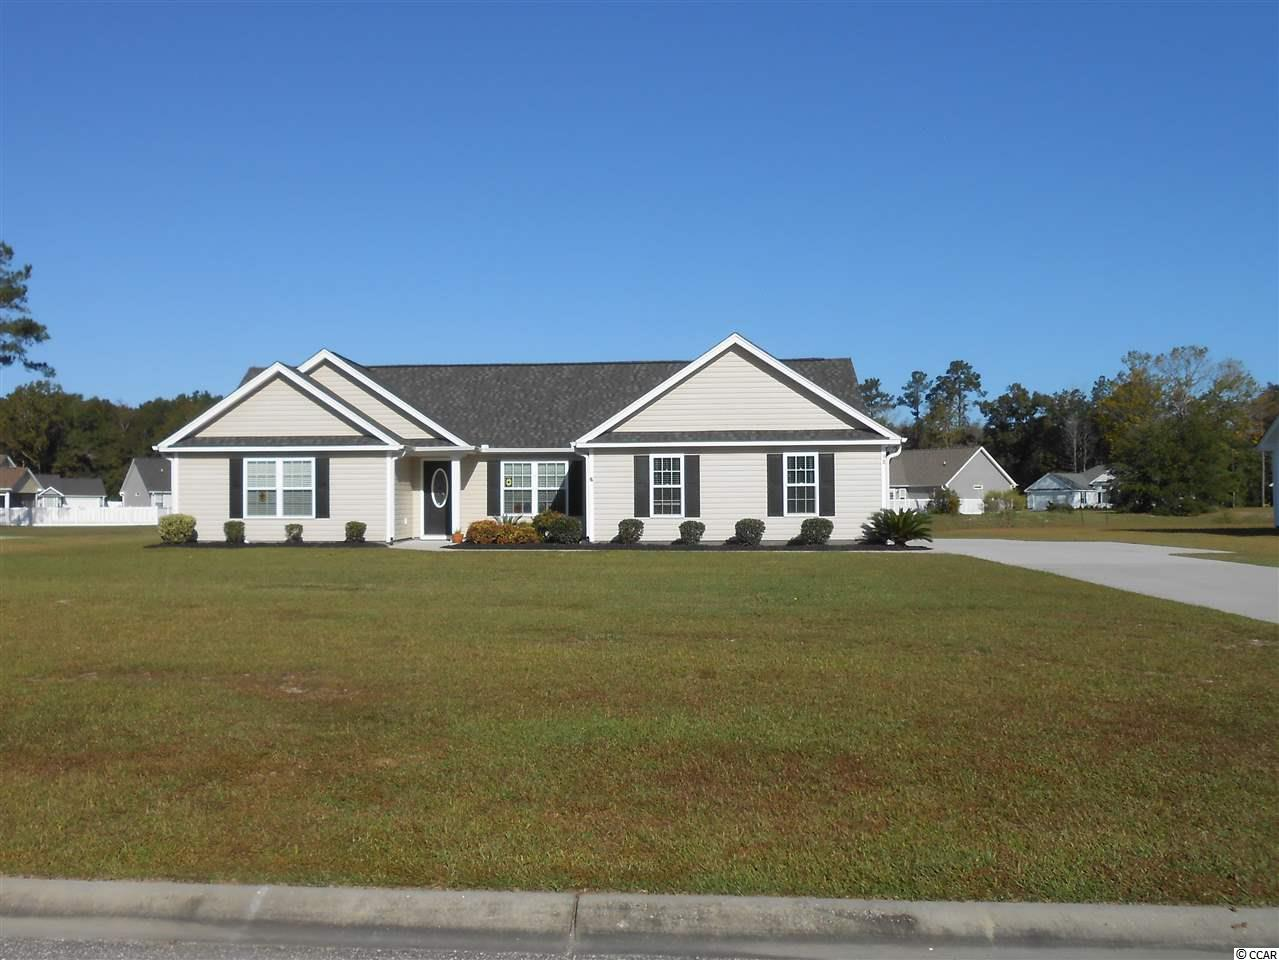 Immaculate one owner 3 bedroom, 2 bath, home in Yauhannah Landing which is a gated Community with 70 homes on large 1/2+ acre lots. The home is on a premium pond lot with a fenced backyard. The living room and kitchen have vaulted ceilings and the master bedroom has a tray ceiling.  The interior walls have been painted.  The sliding doors in the dining area provide access to the 14' X 10' covered rear porch which has a ceiling fan and overlooks the pond.  The home has rain gutters.  The side entry tandem 2 car garage has an additional 14' X 10' bay which could be used for a 3rd vehicle, a workshop, a boat, etc.  The garage also has 2 windows and drop down stairs for storage above the garage.  Launch your boat from the private Community owned boat ramp!  Don't miss out on this beauty! All measurements and square footage are approximate and not guaranteed. Buyer is responsible for verification.